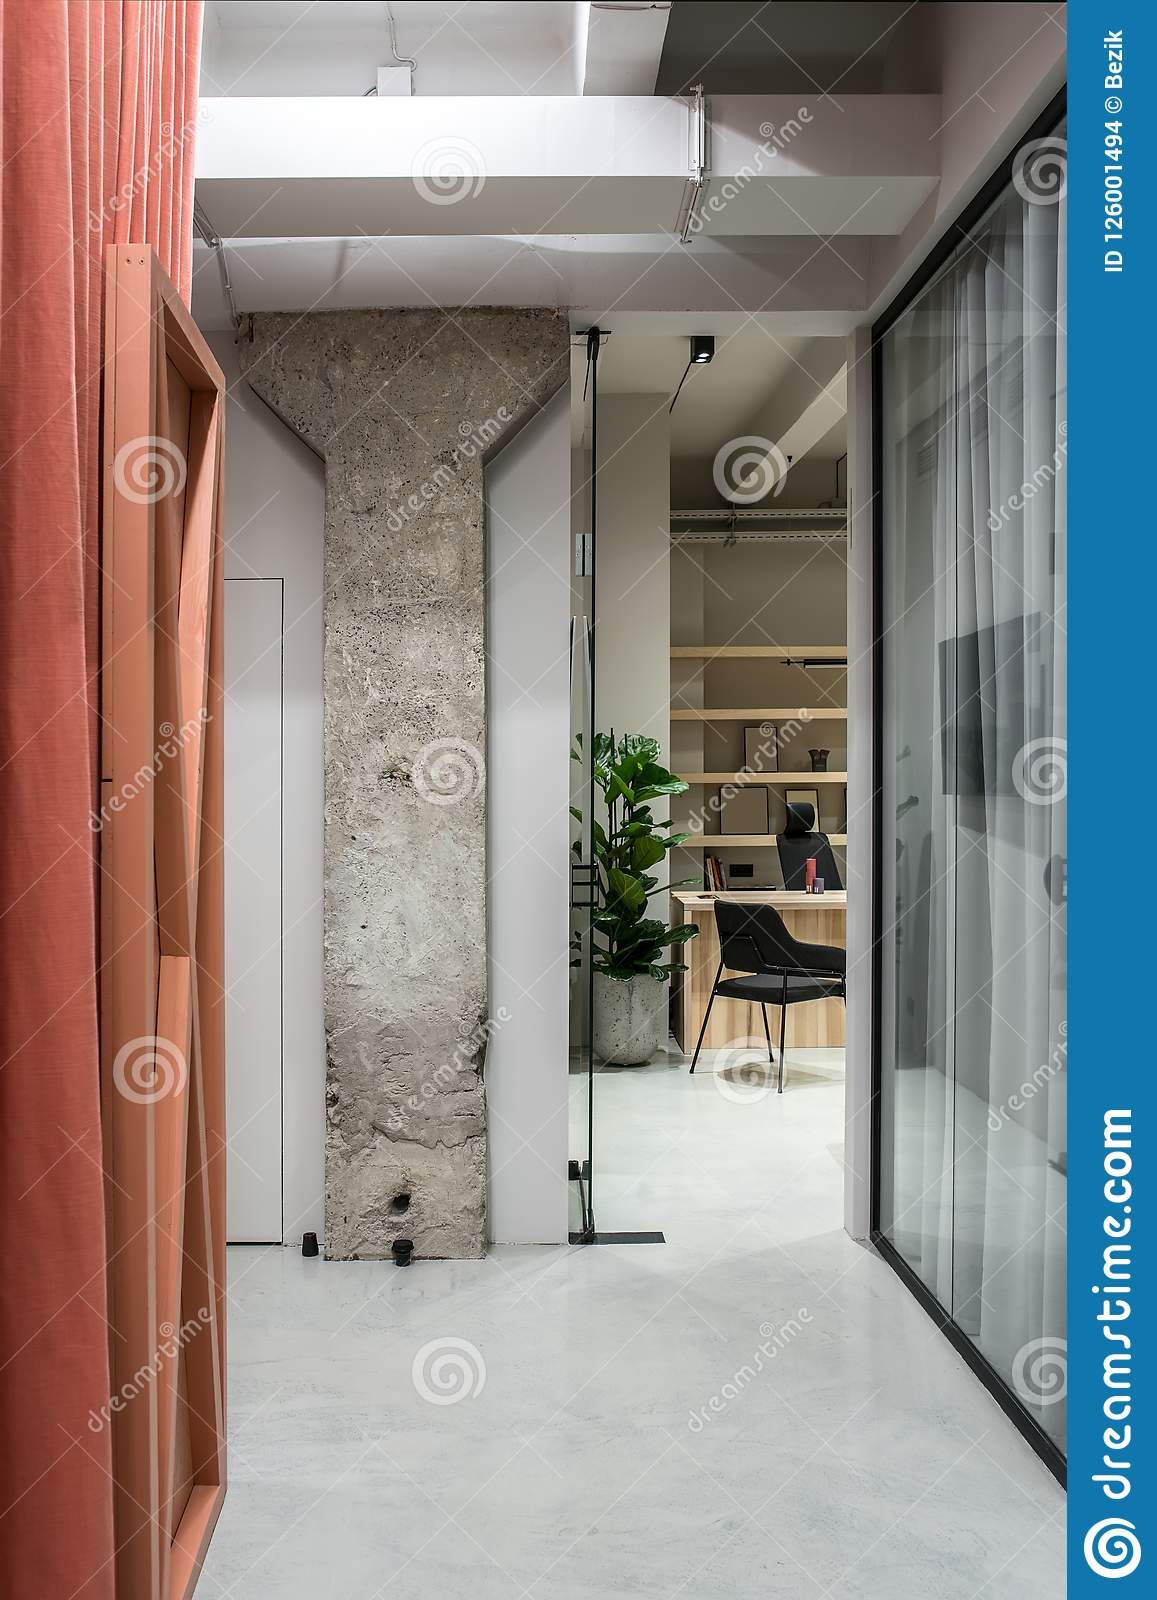 Glass Partition Wall Home Design Awesome Stylish Interior In Loft Style with Gray Walls Stock